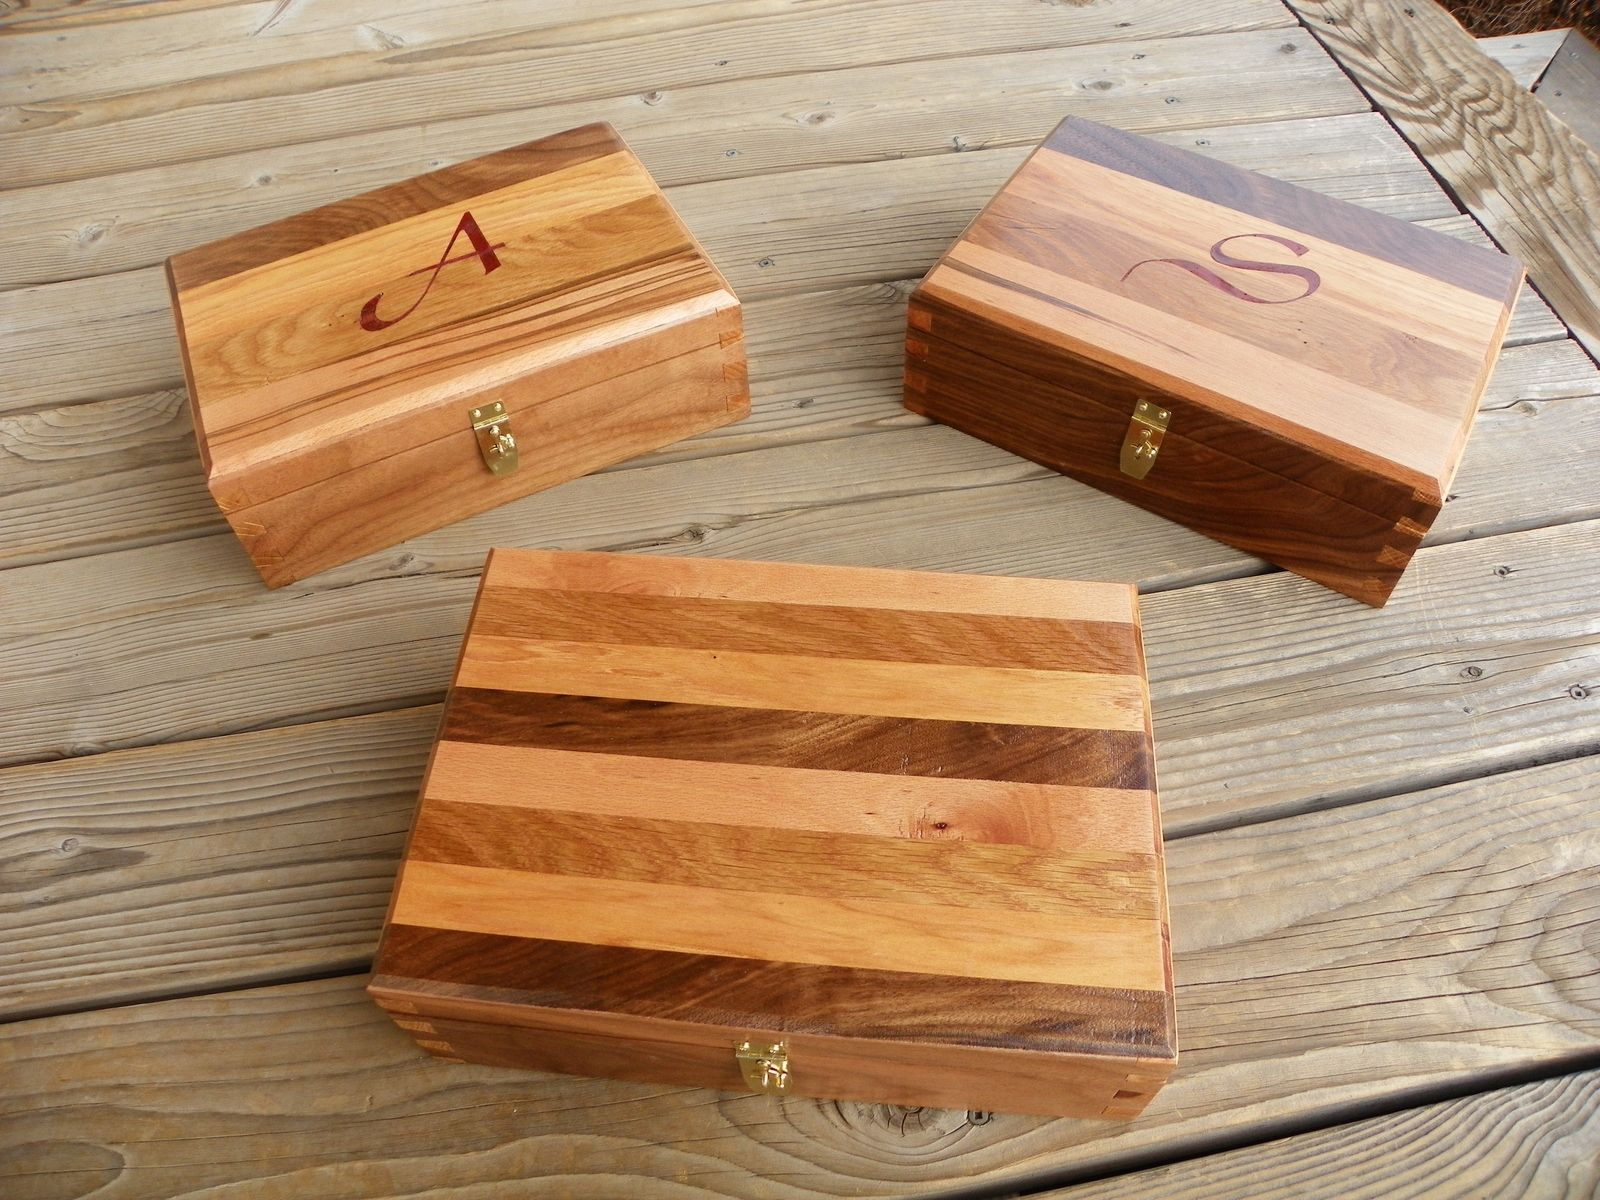 Handmade Dovetailed Box Using Four Wood Types By Elegant Woodworking